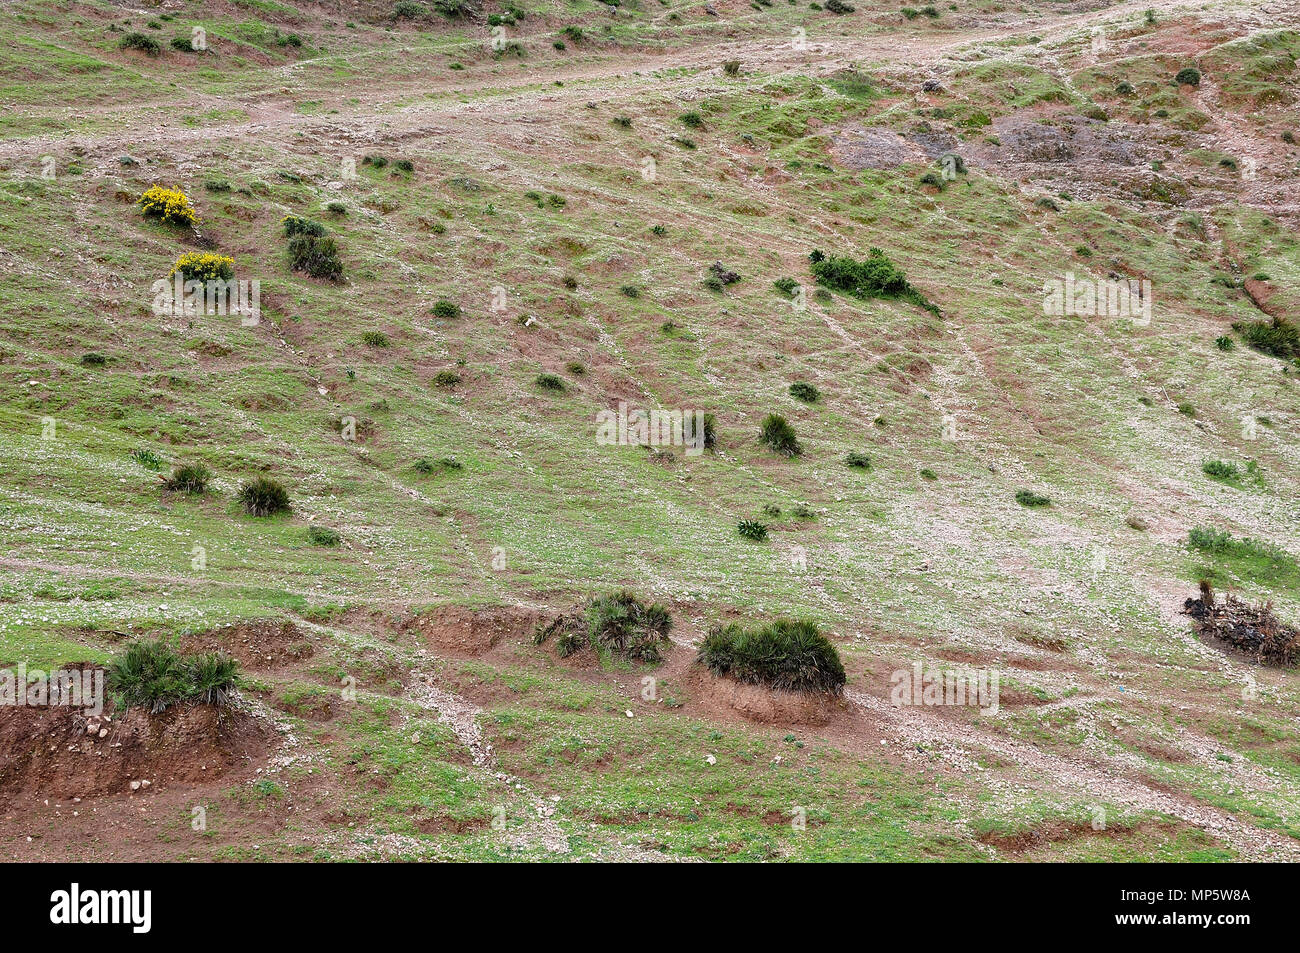 mountain side in atlas mountains; Morocco; with sparse vegetation and rock detritus - Stock Image